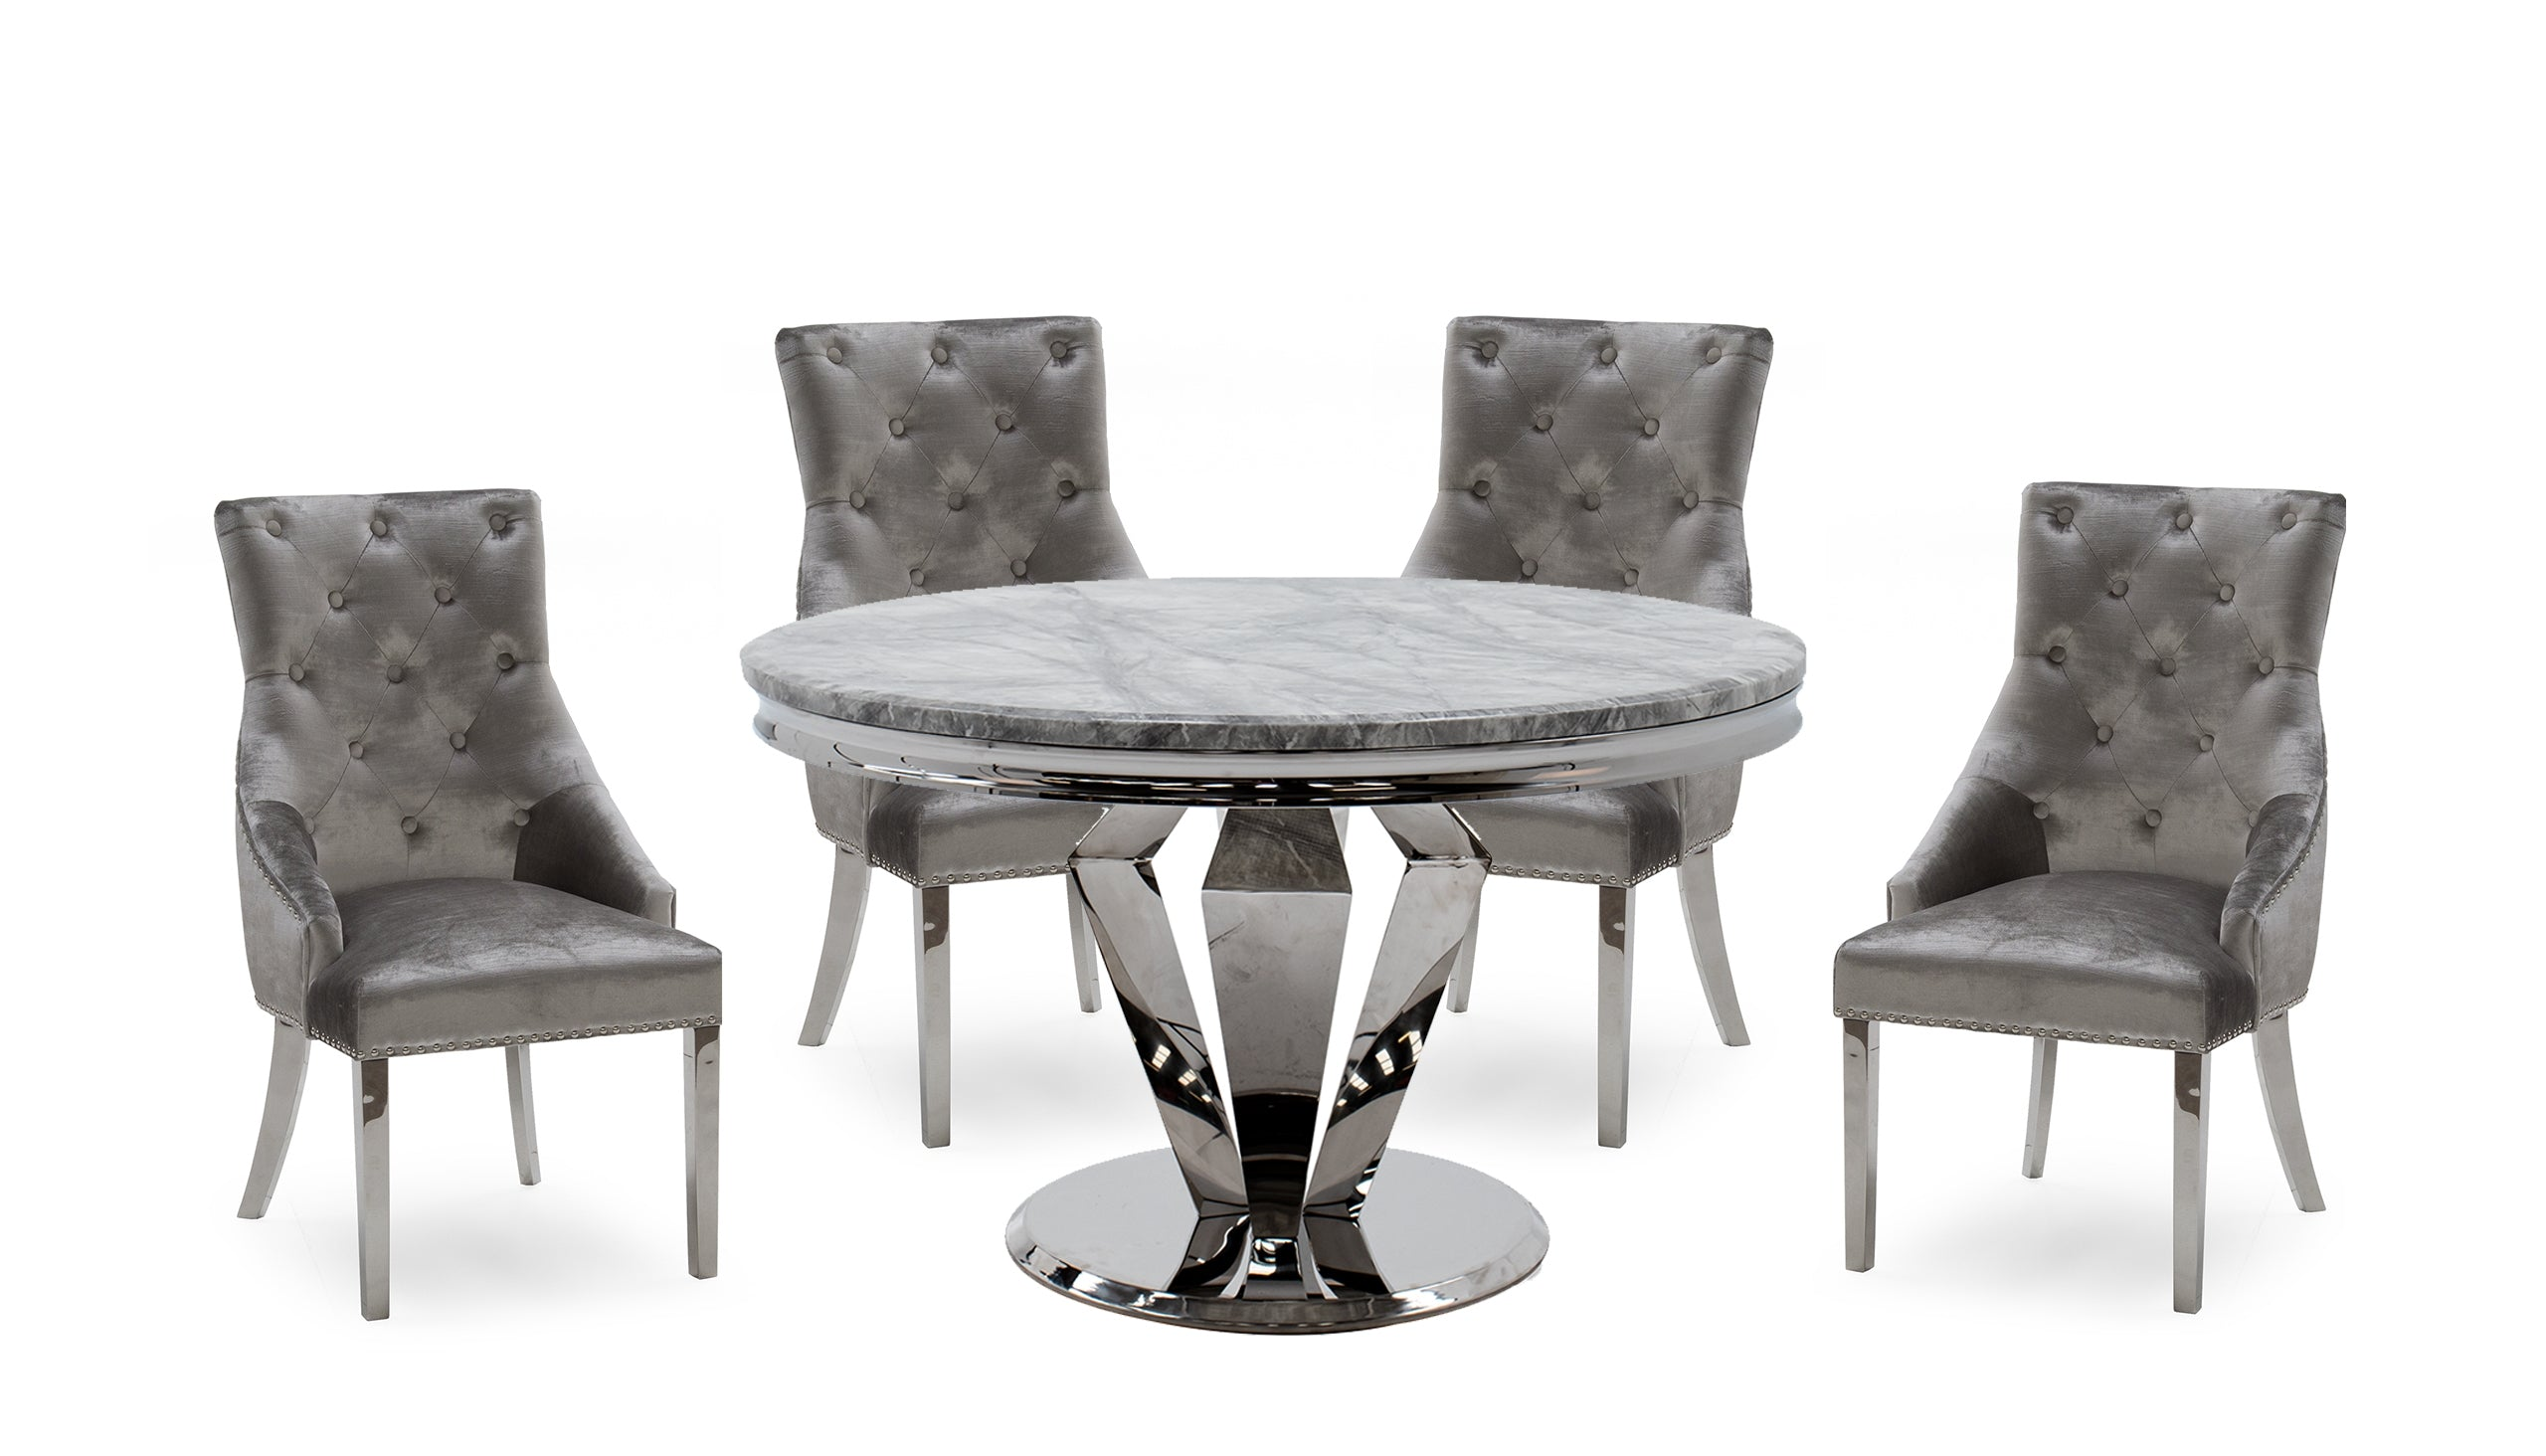 Amour 1.3m Marble Round Dining Table with 4 Chairs - AHF Furniture & Carpets